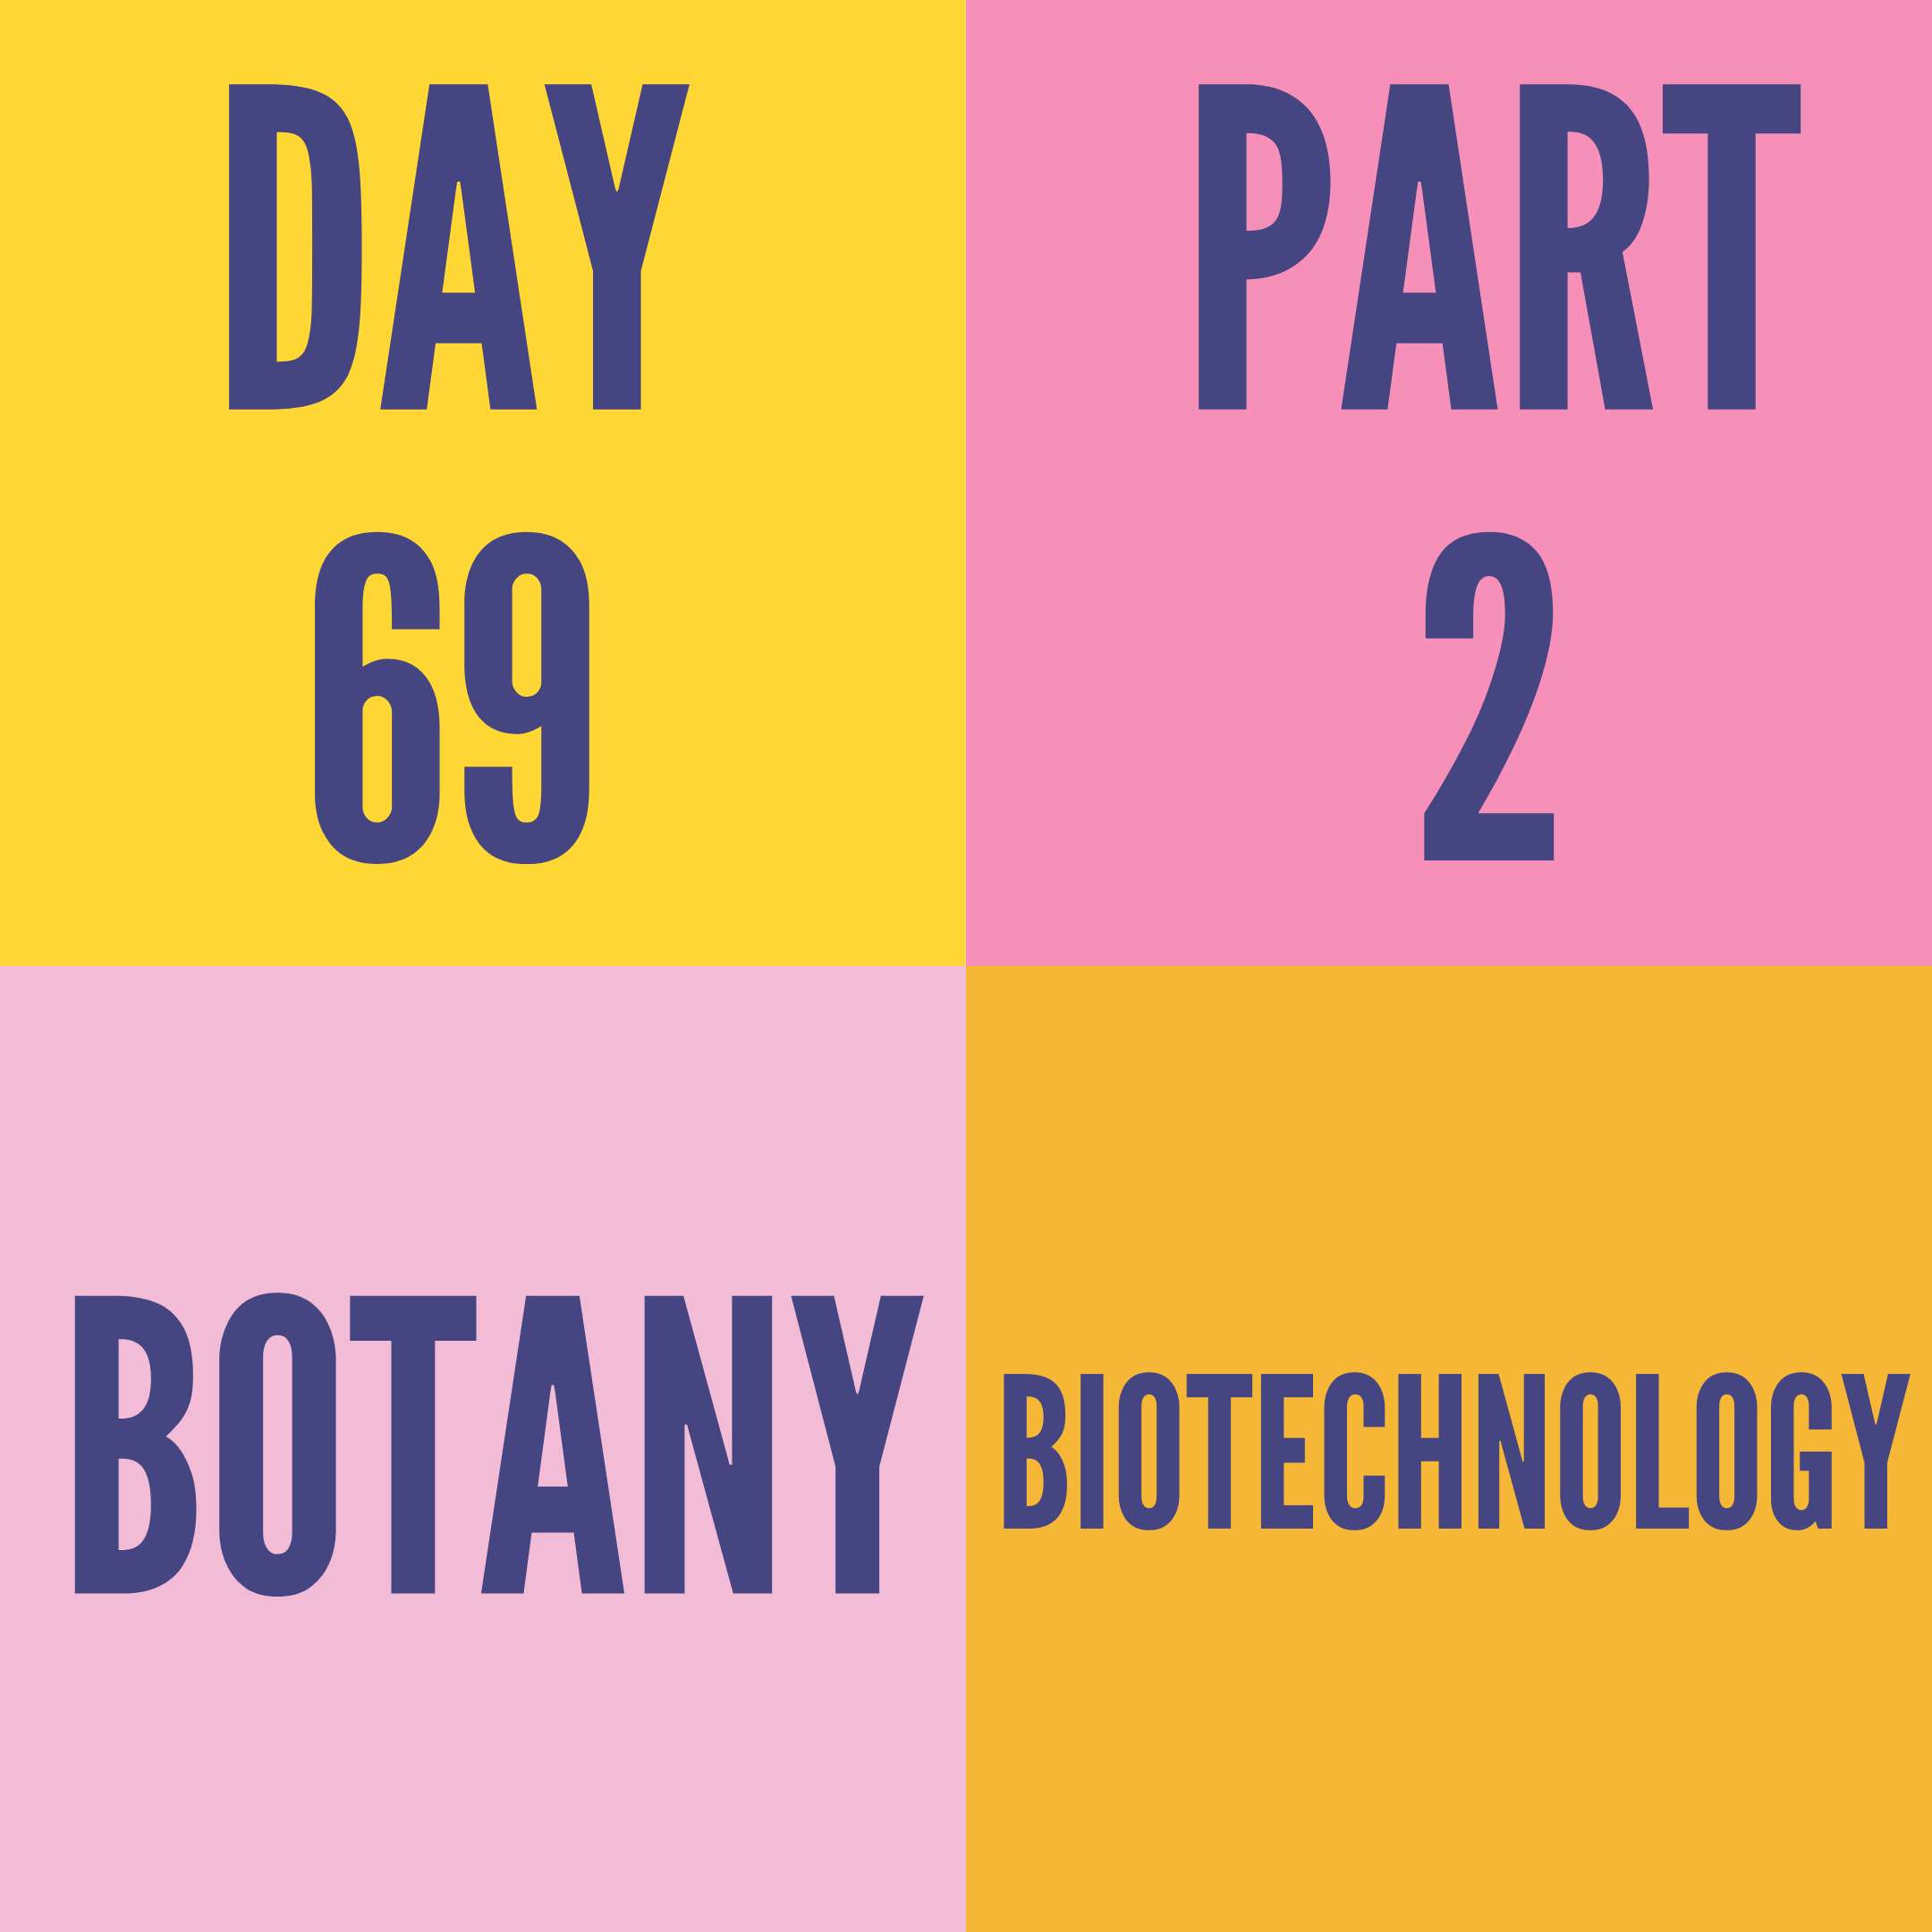 DAY-69 PART-2 BIOTECHNOLOGY